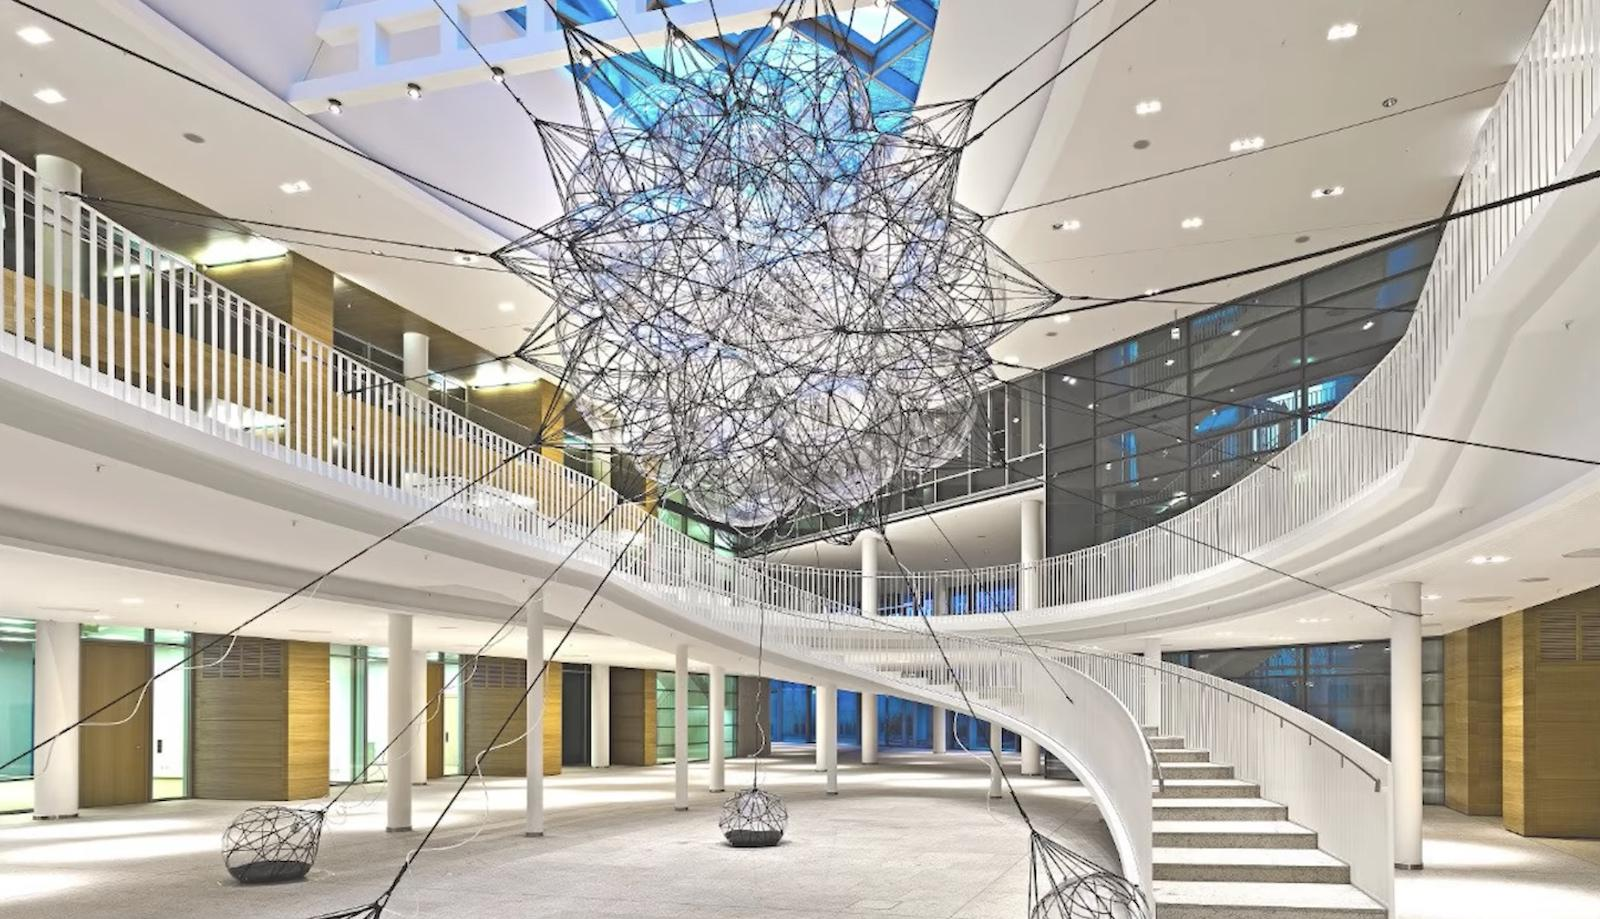 European Patent Office, Flying Garden installation